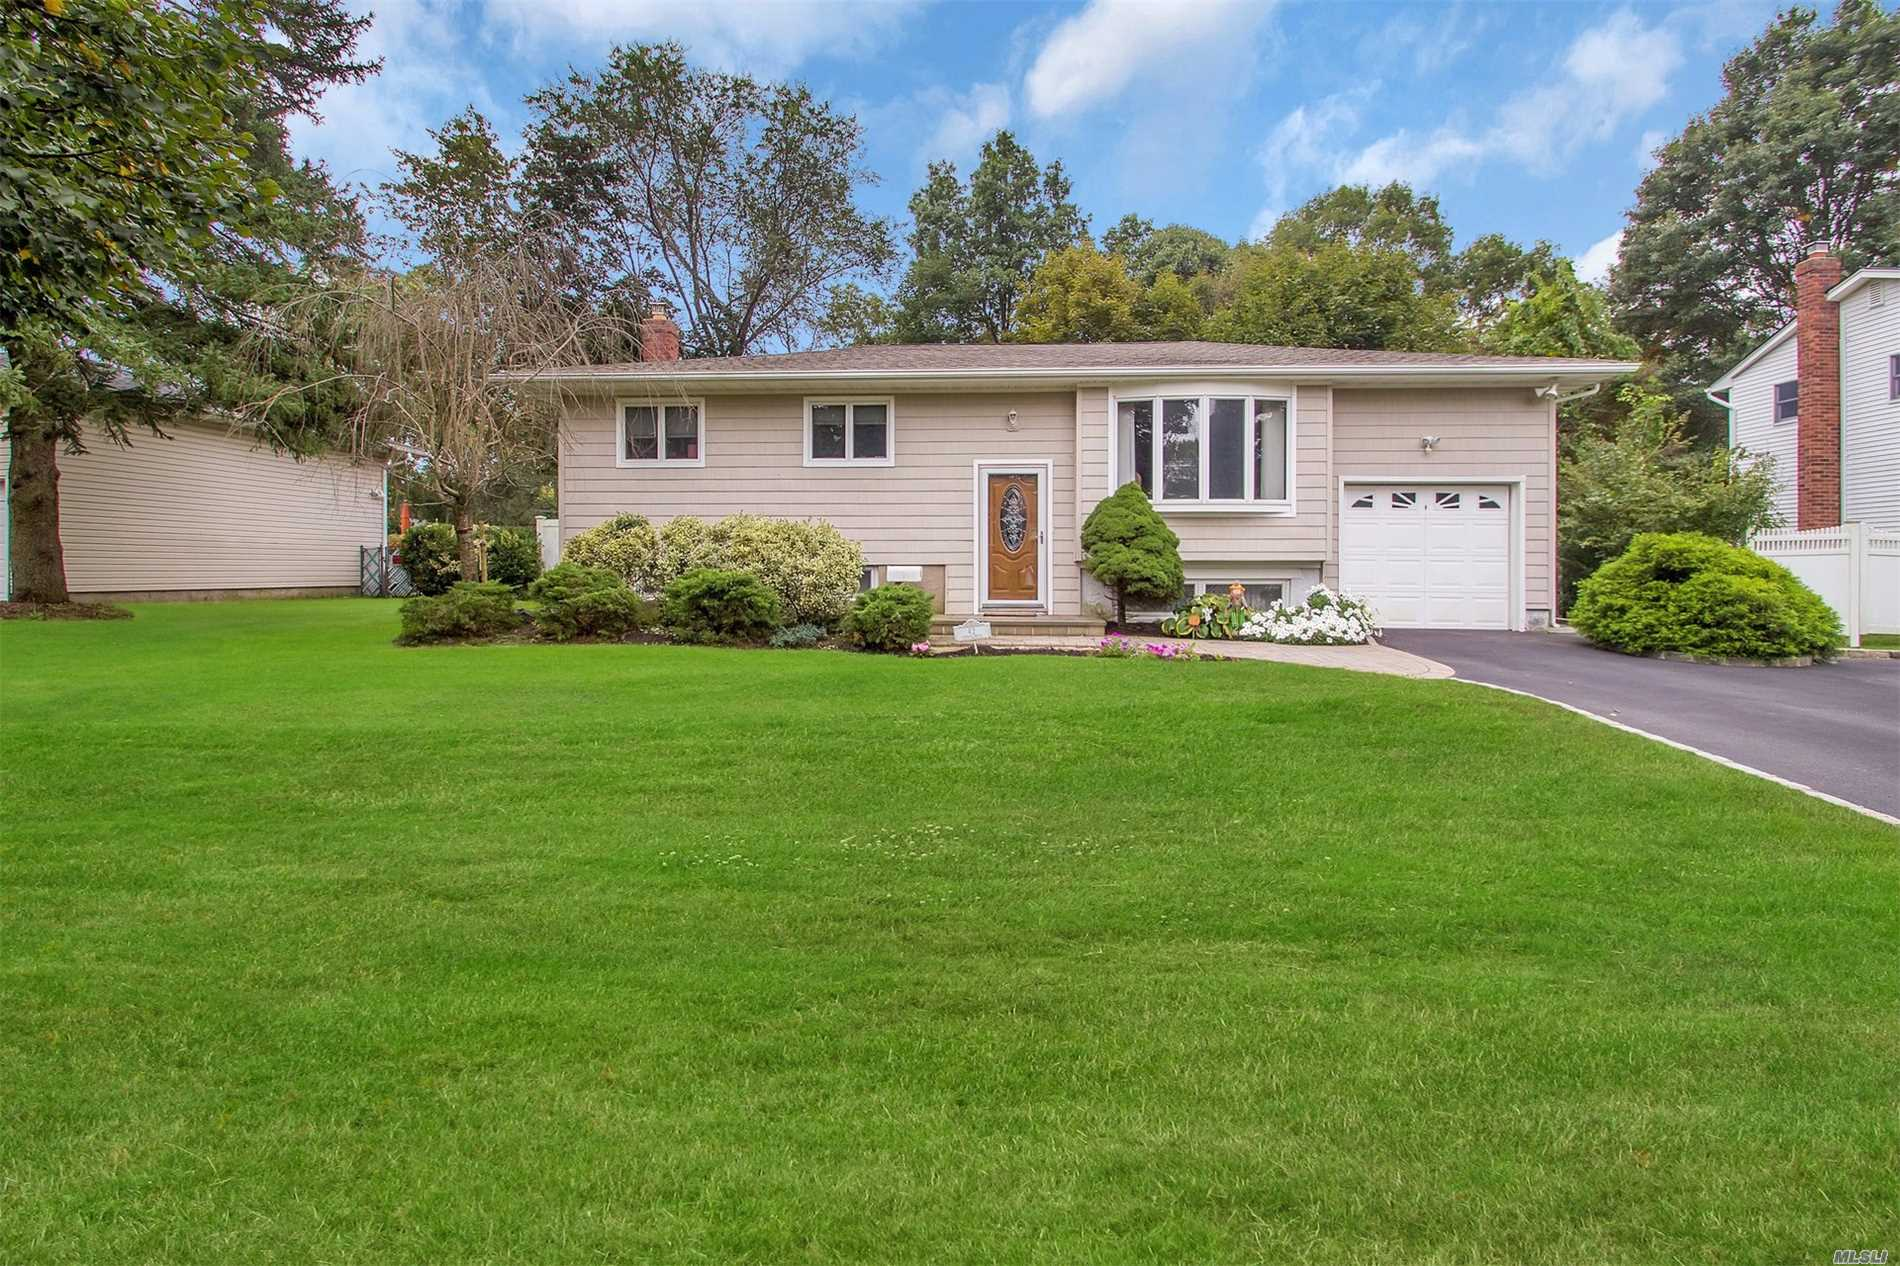 Lovely, Spacious Raised Ranch With Open Floor Plan, Features 4 Bedrooms, Full Bath and Florida Room With Gas Fireplace.  5 Year Young Kitchen with Granite Countertops & Stainless Steel Appliances. Full Finished Basement - New Washer & Dryer. Gas, CAC, Wood Floors, IGS. Mid-Block Location in Desireable Indian Section of Commack. Wood Park/Sawmill Schools. Make This Your Home For The Summer!